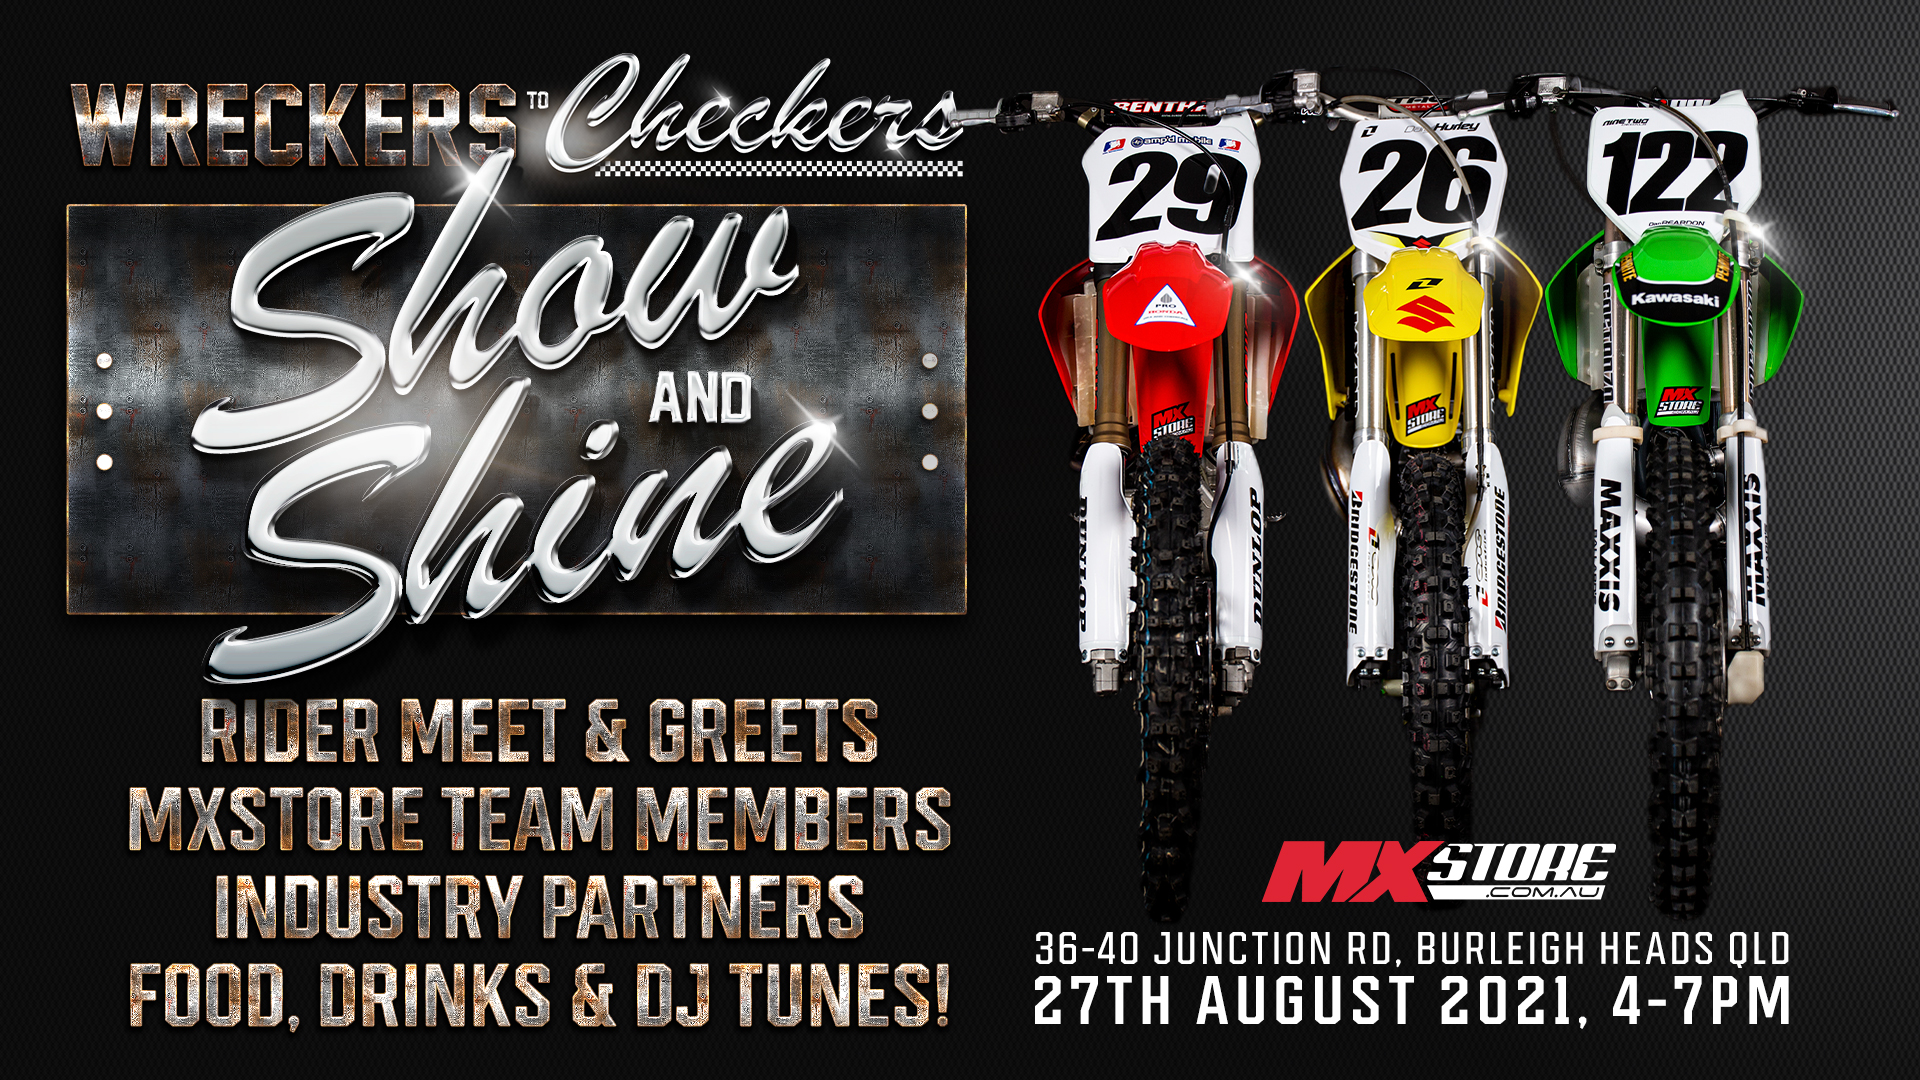 W2C-Show-and-Shine-Facebook-Event-Banner